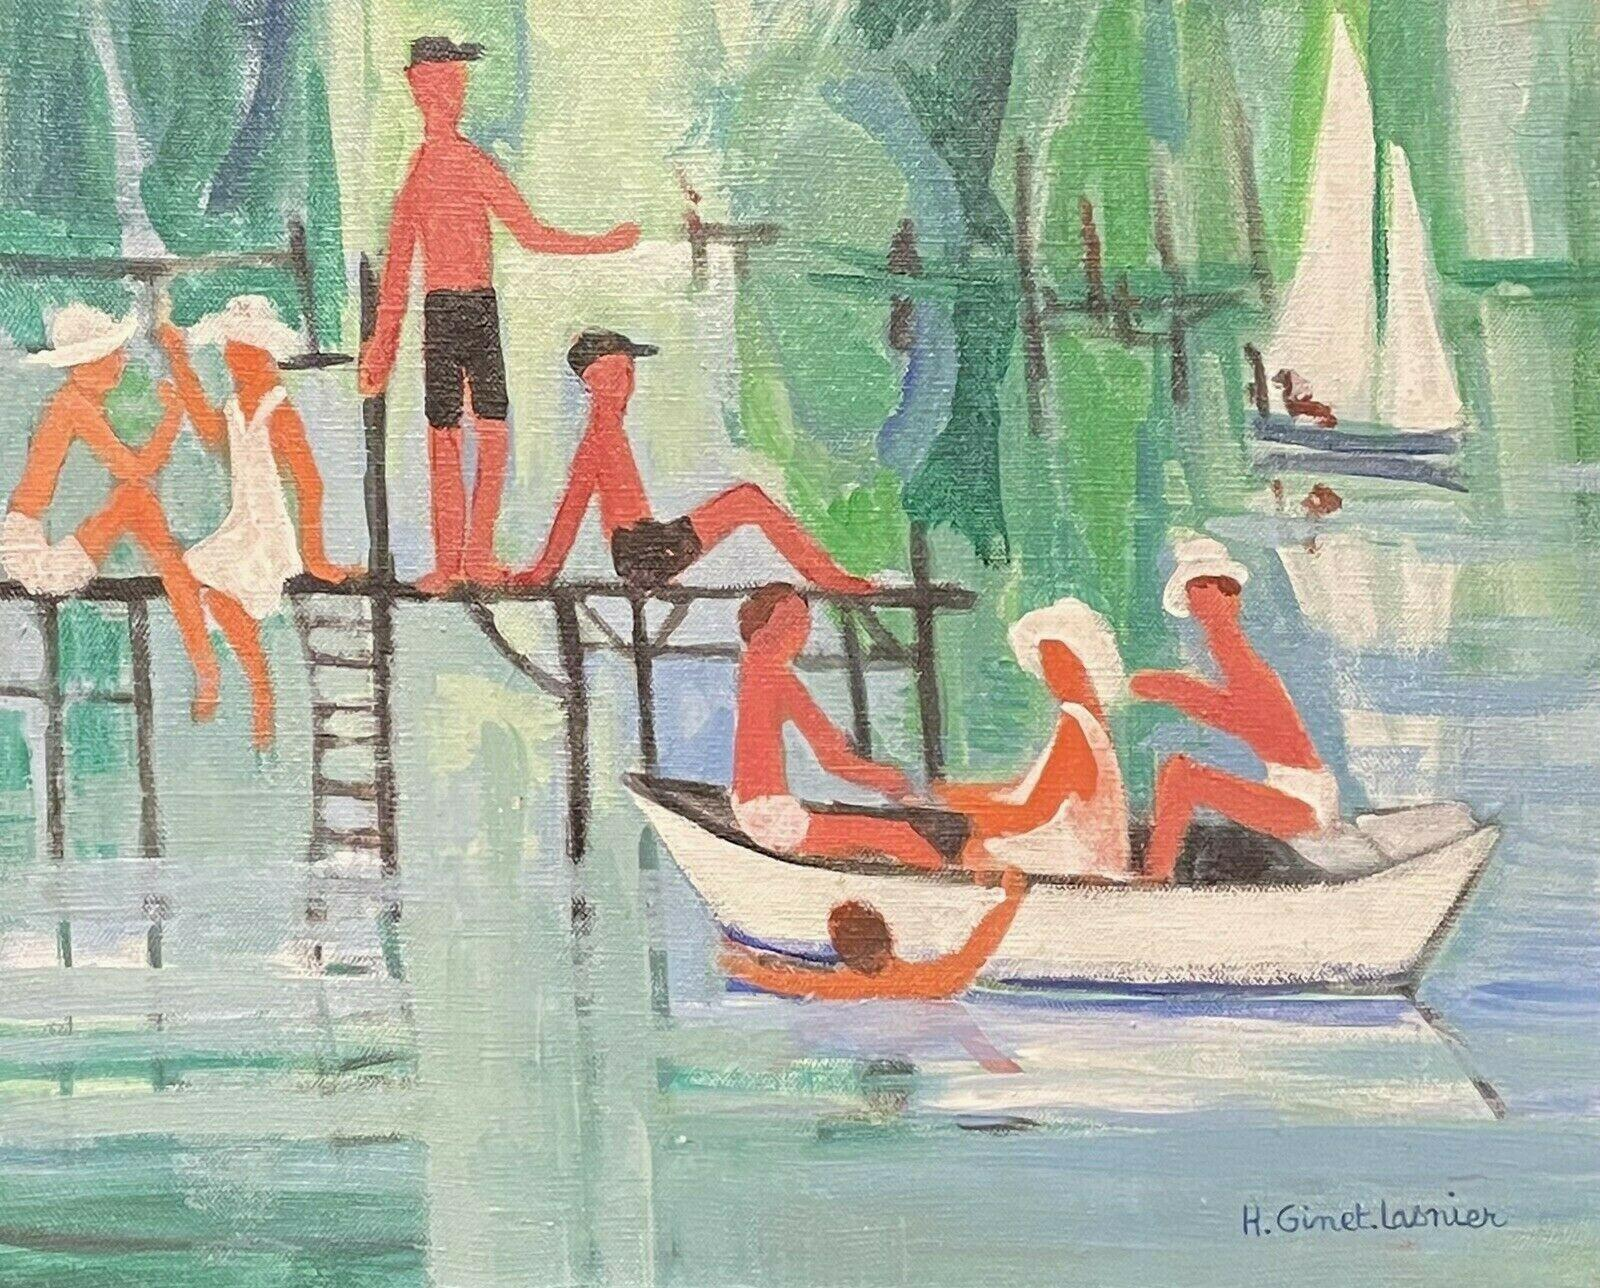 GINET-LASNIER (1927-2020) FRENCH MODERNIST OIL - YOUNG PLAYING ON THE RIVER BOAT